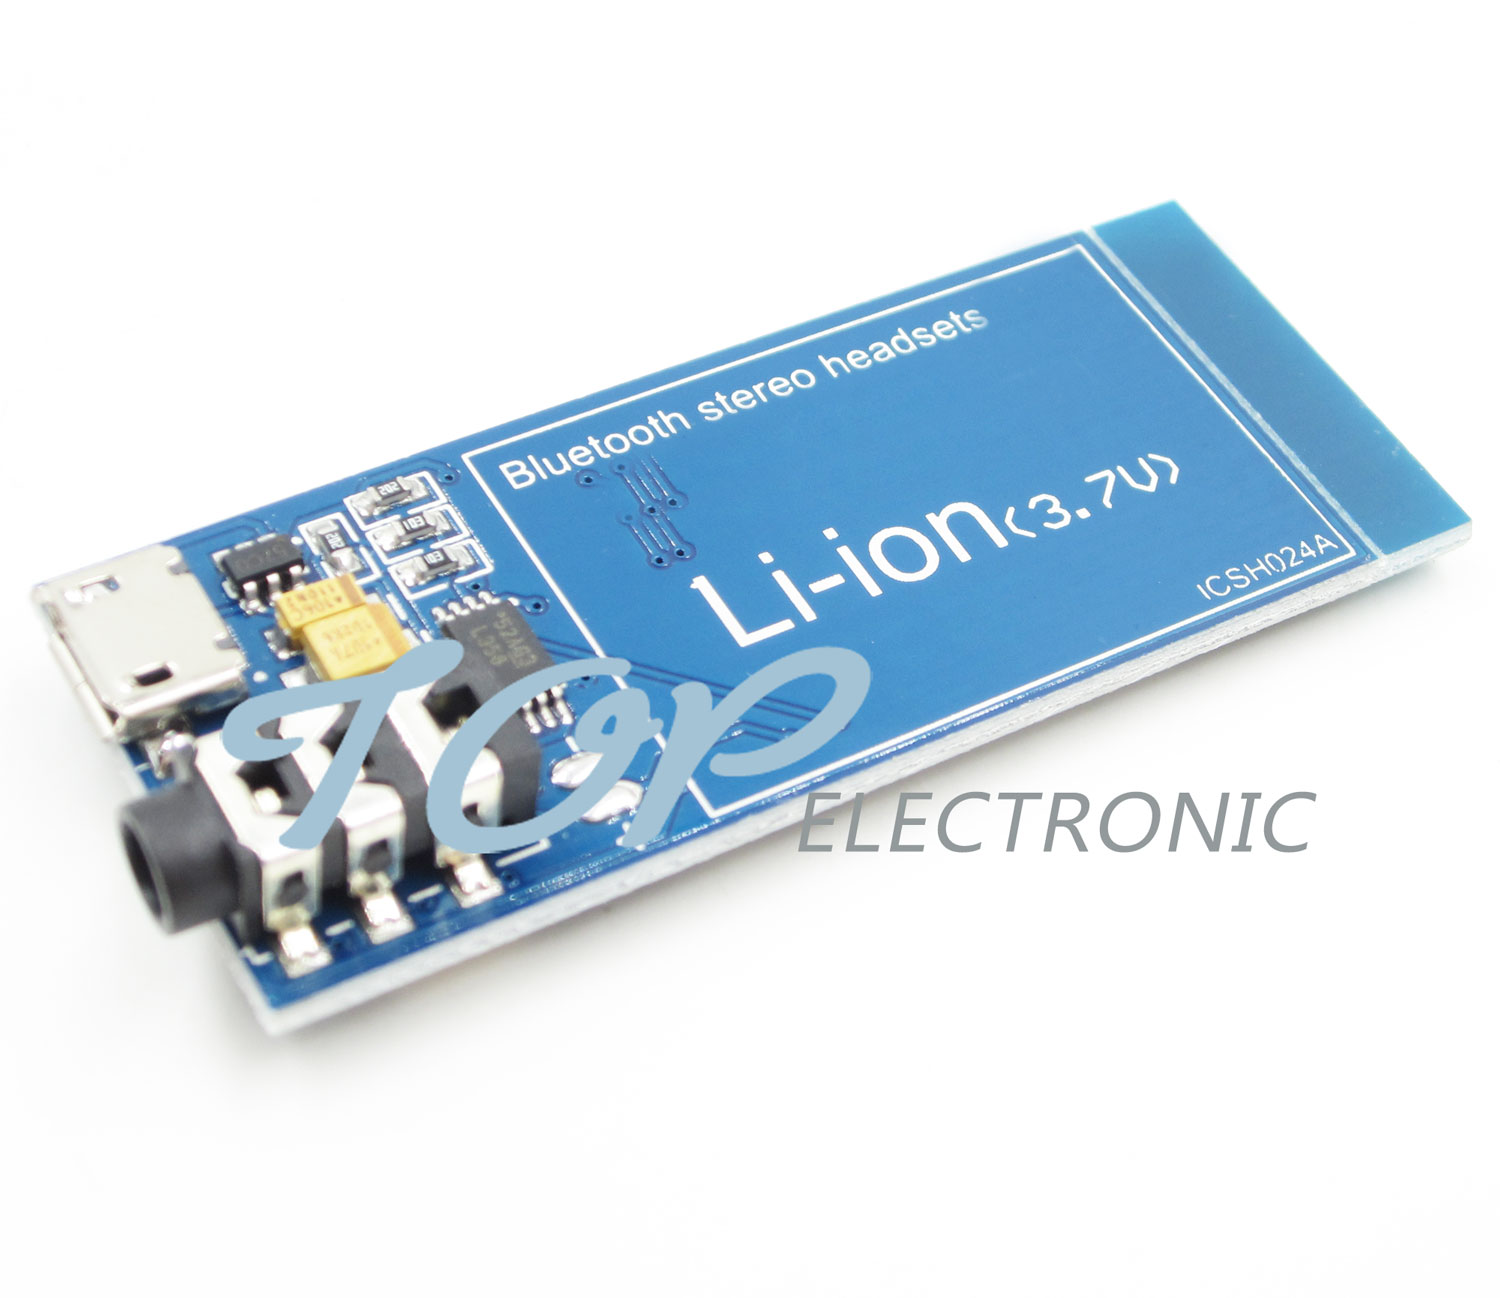 ... XS3868 Bluetooth Stereo Audio Module Support A2DP AVRCP Bluetooth Shield board